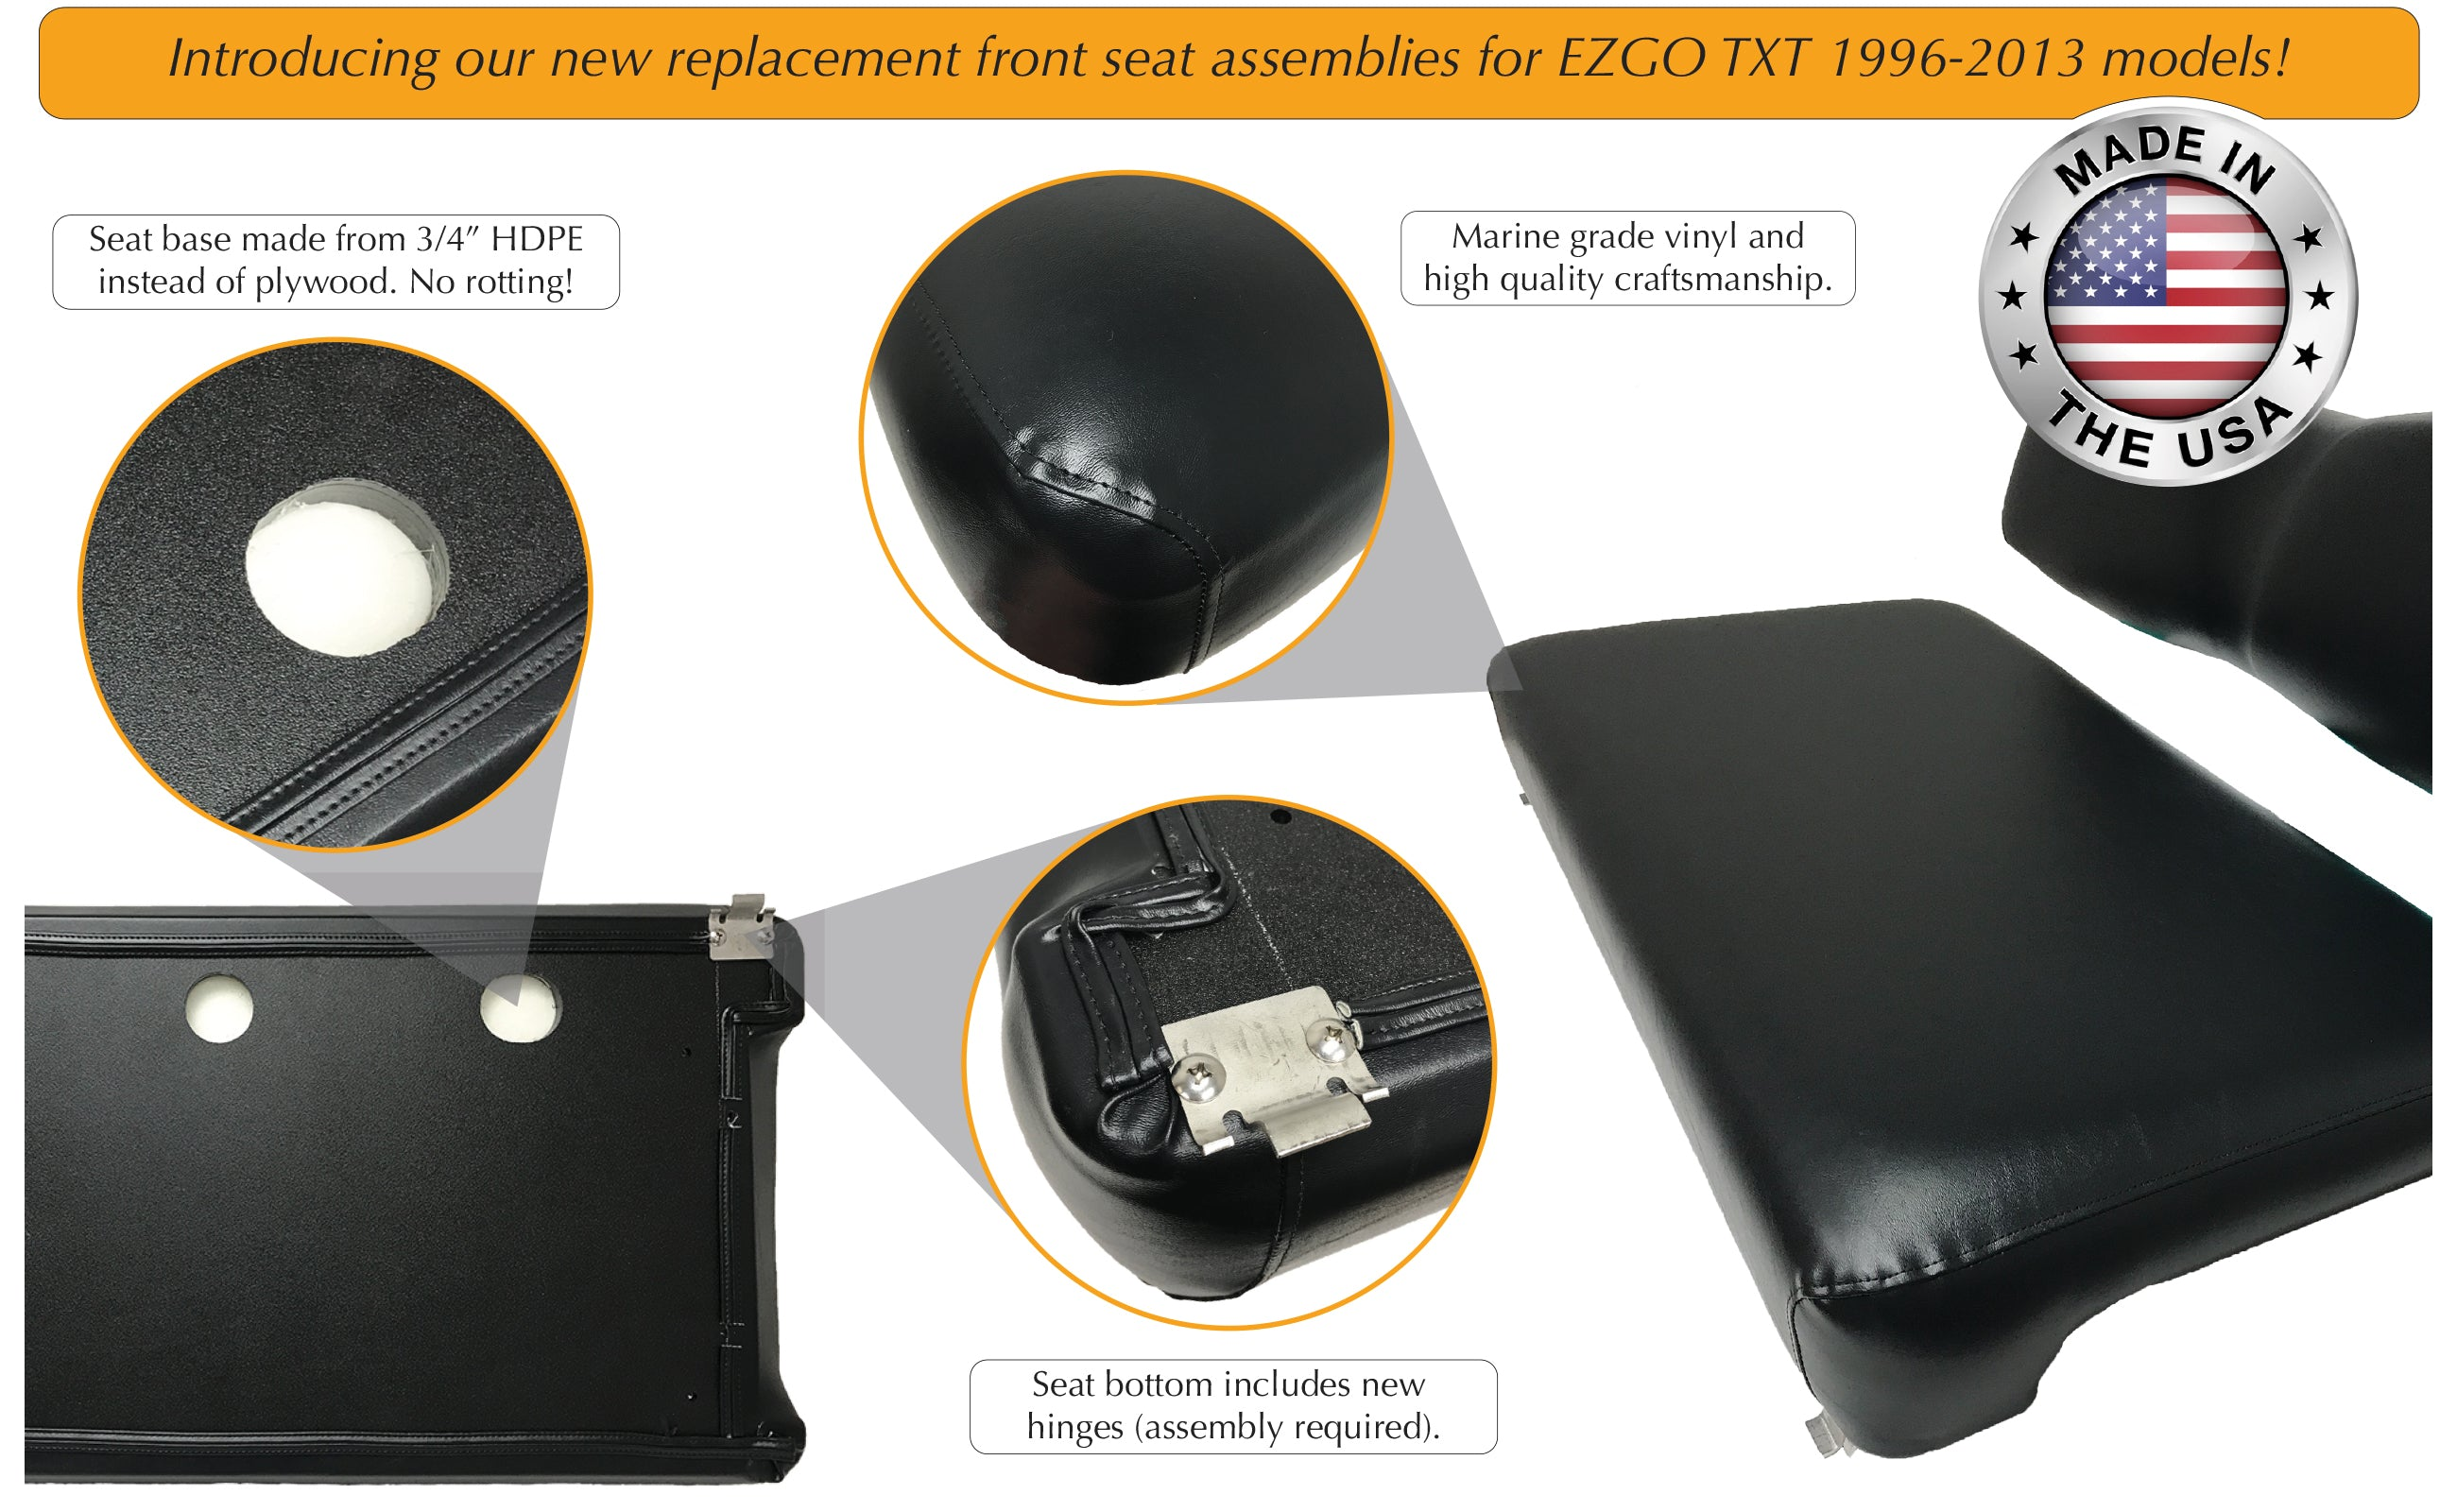 Features of front replacement seat assembly with no wood for EZGO TXT model golf cart.